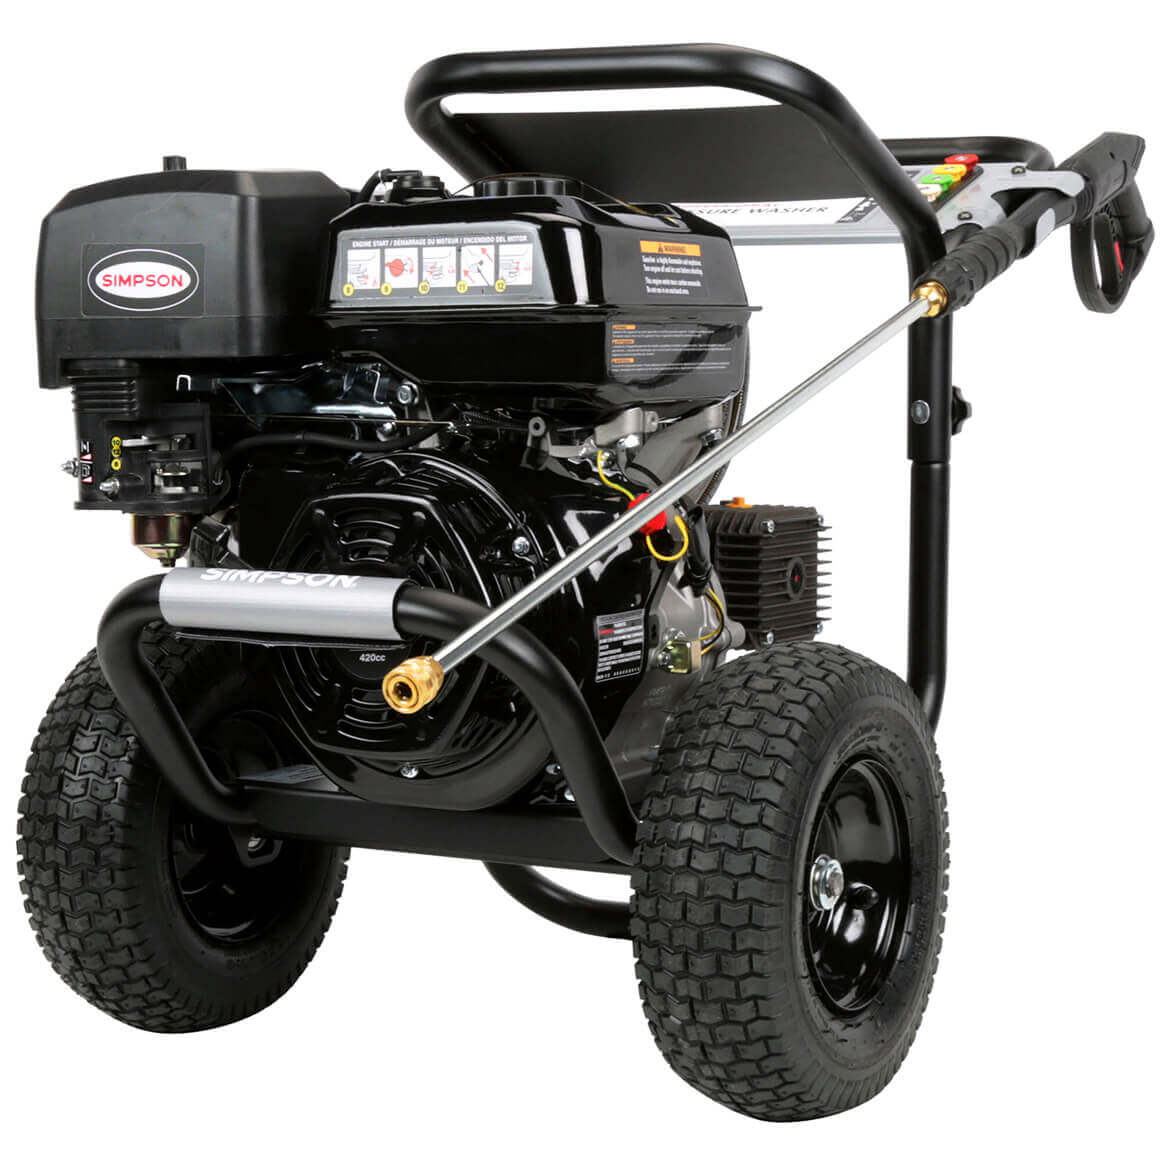 SIMPSON 60843 4.0 GPM 420cc Professional Gas Pressure Washer w/ AAA Plunger